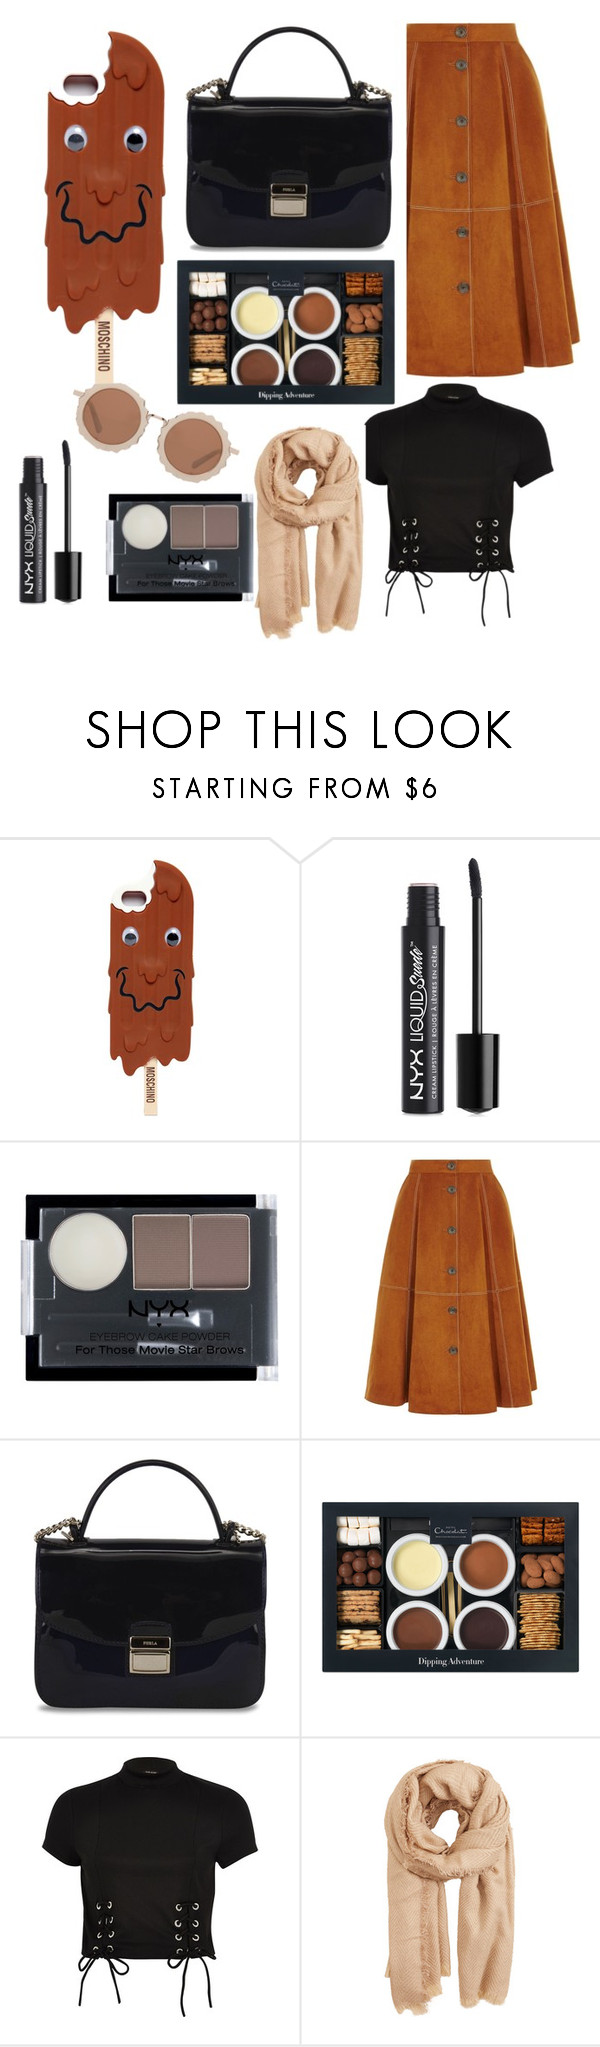 """""""chocolate"""" by azaleamorris ❤ liked on Polyvore featuring Moschino, NYX, Karen Millen, Furla, River Island, MANGO and House of Holland"""